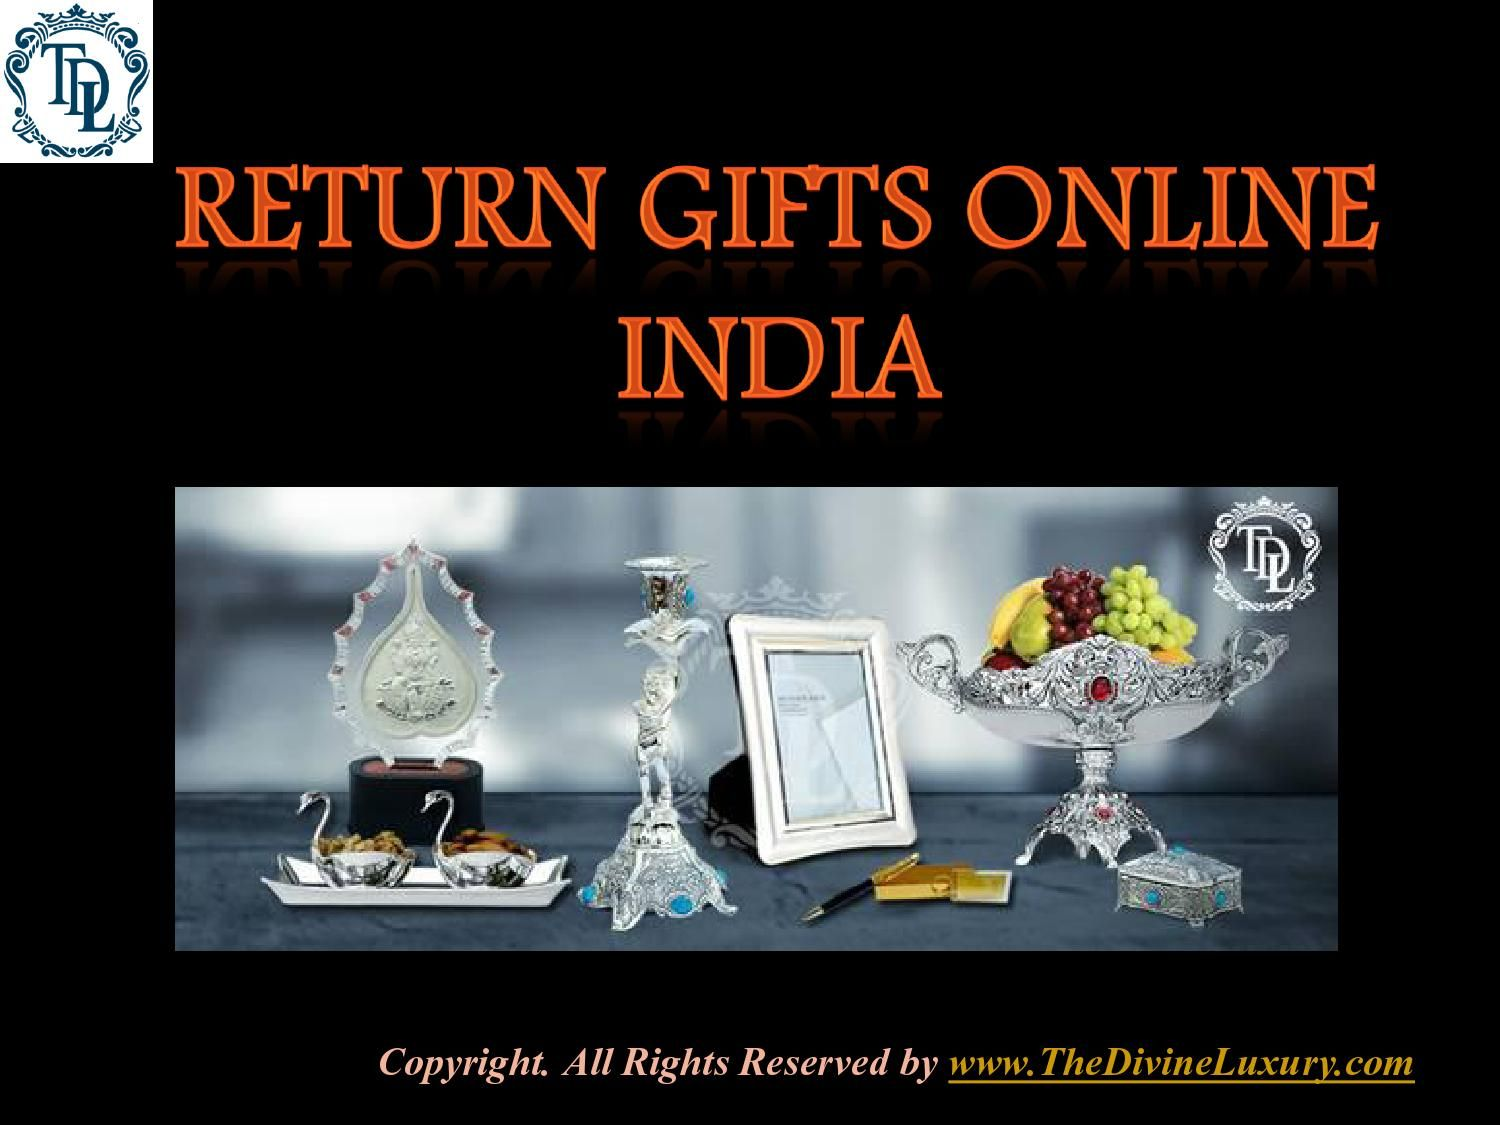 You Will Find Gift For House Warming To Gifts Birthday And Many Other Occasions Get Return Online By Shopping